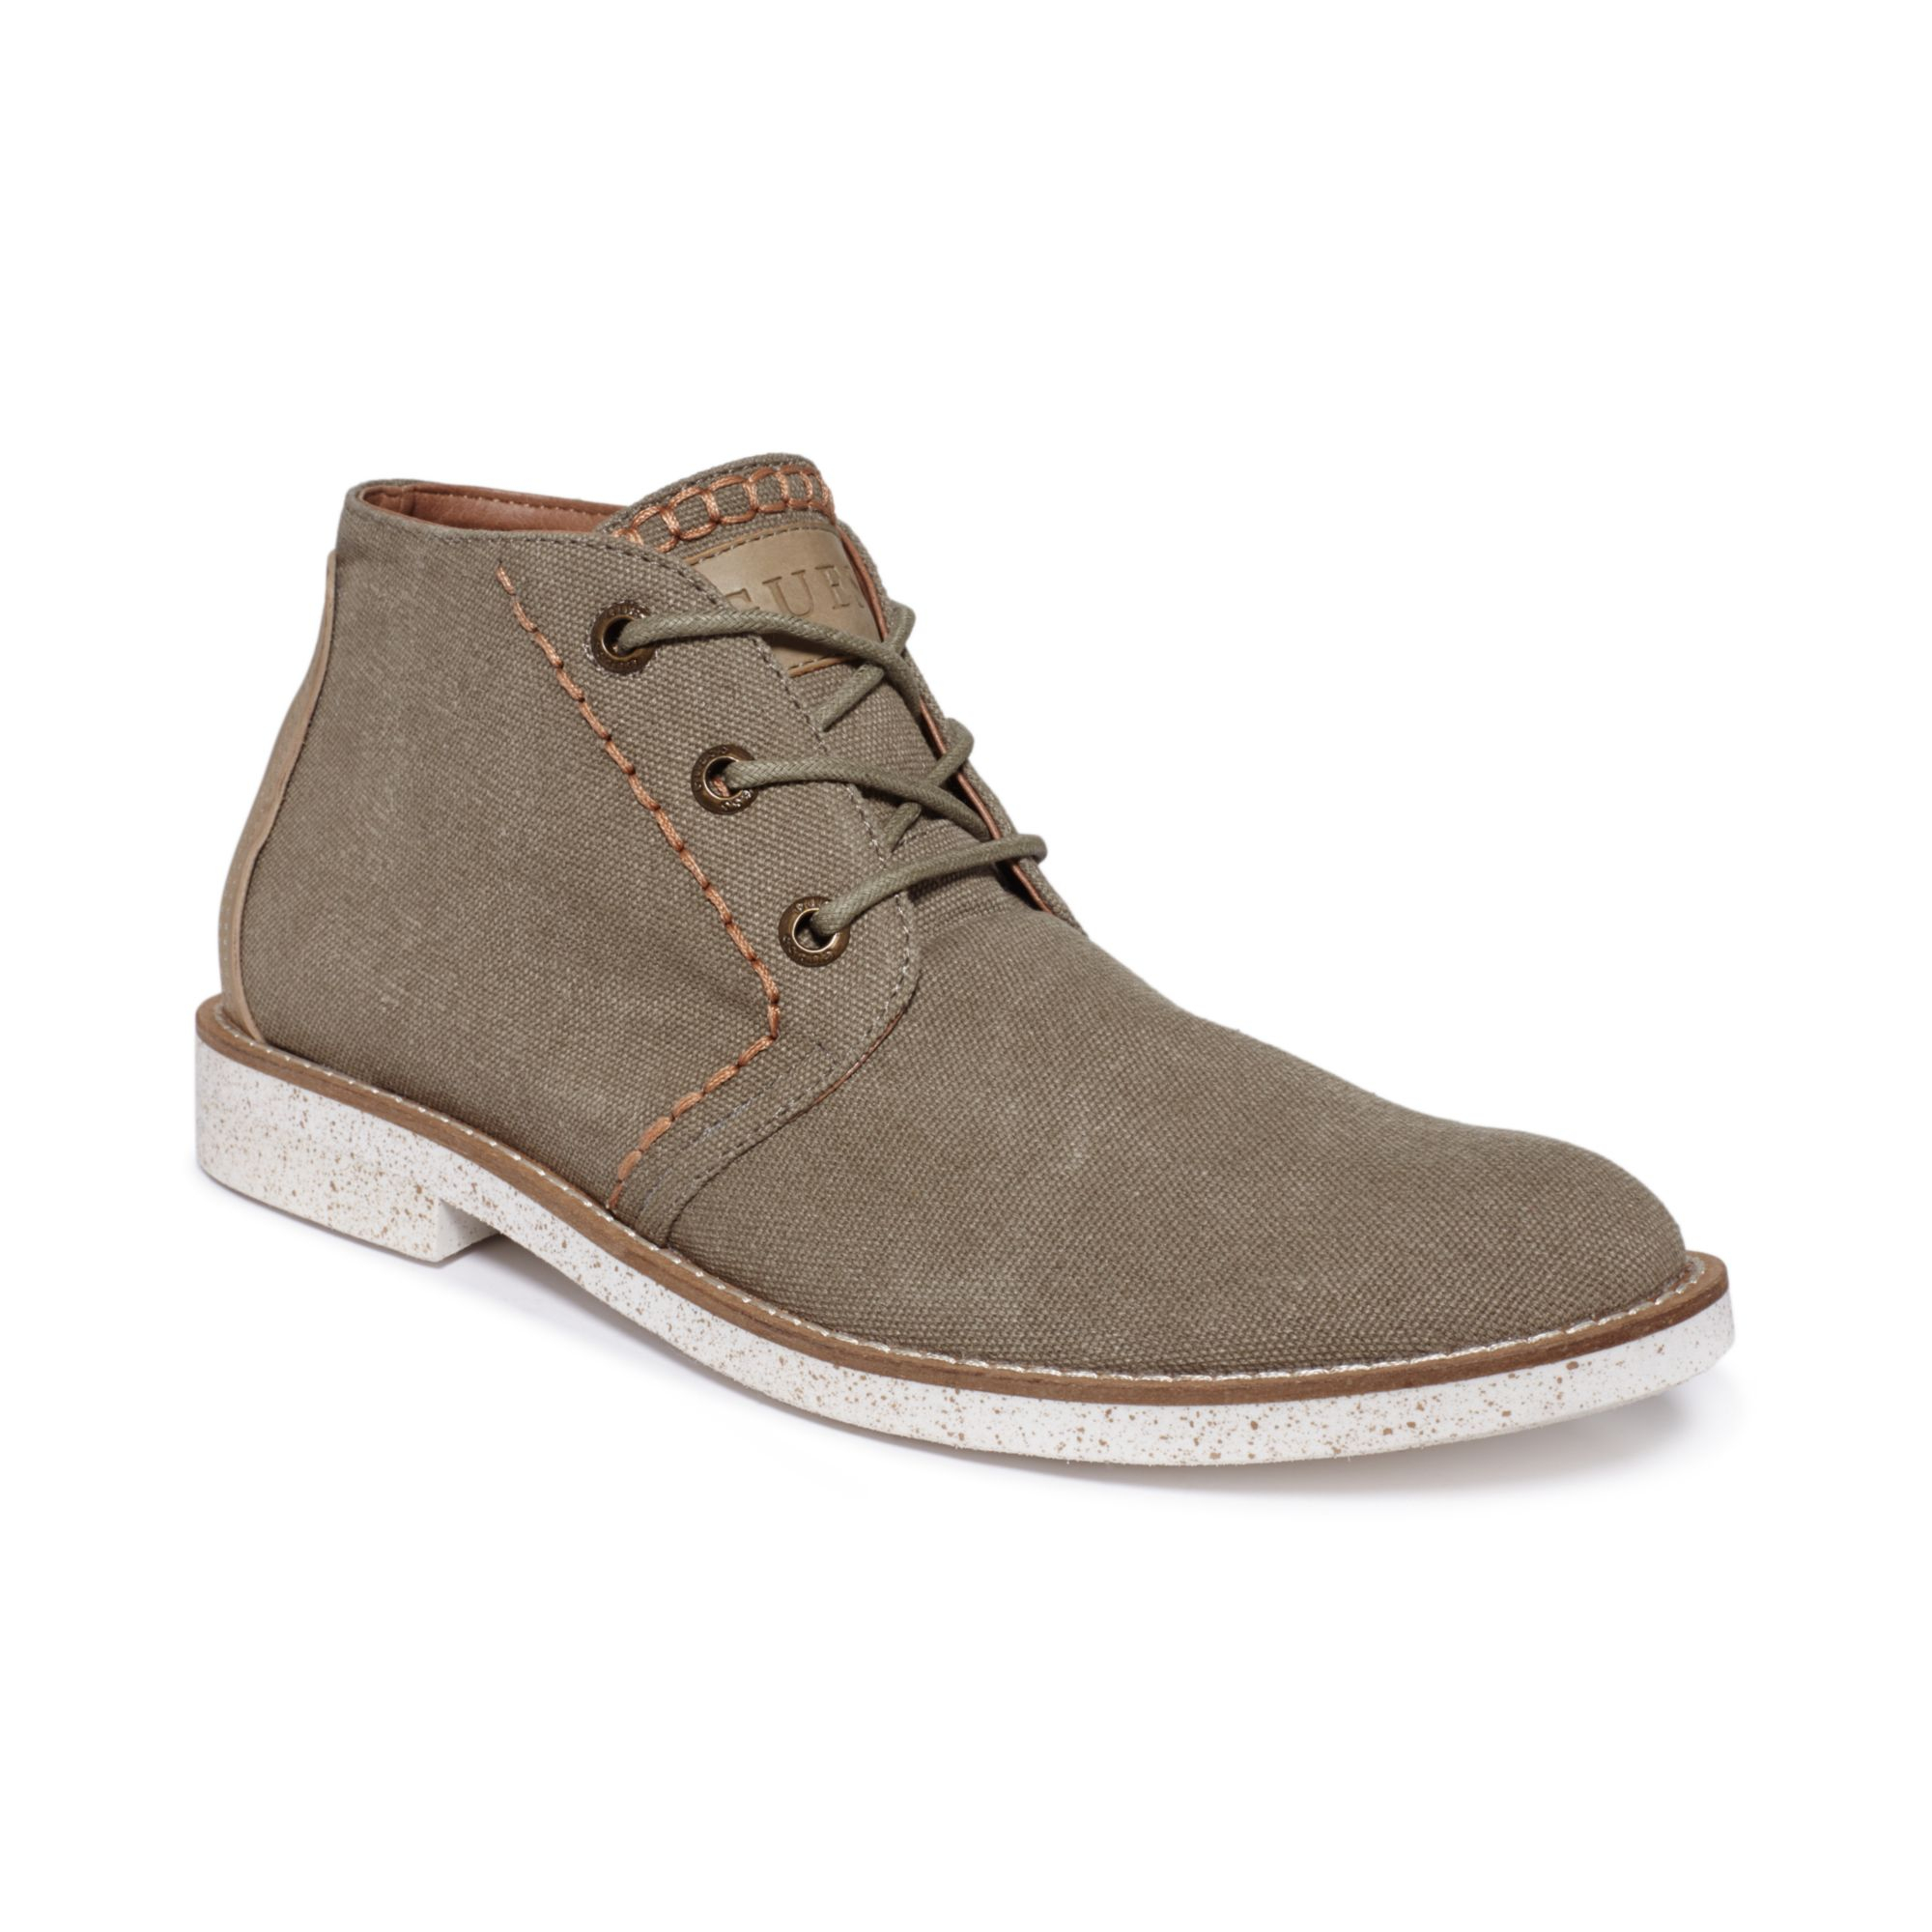 Guess shoes for men - Lookup BeforeBuying